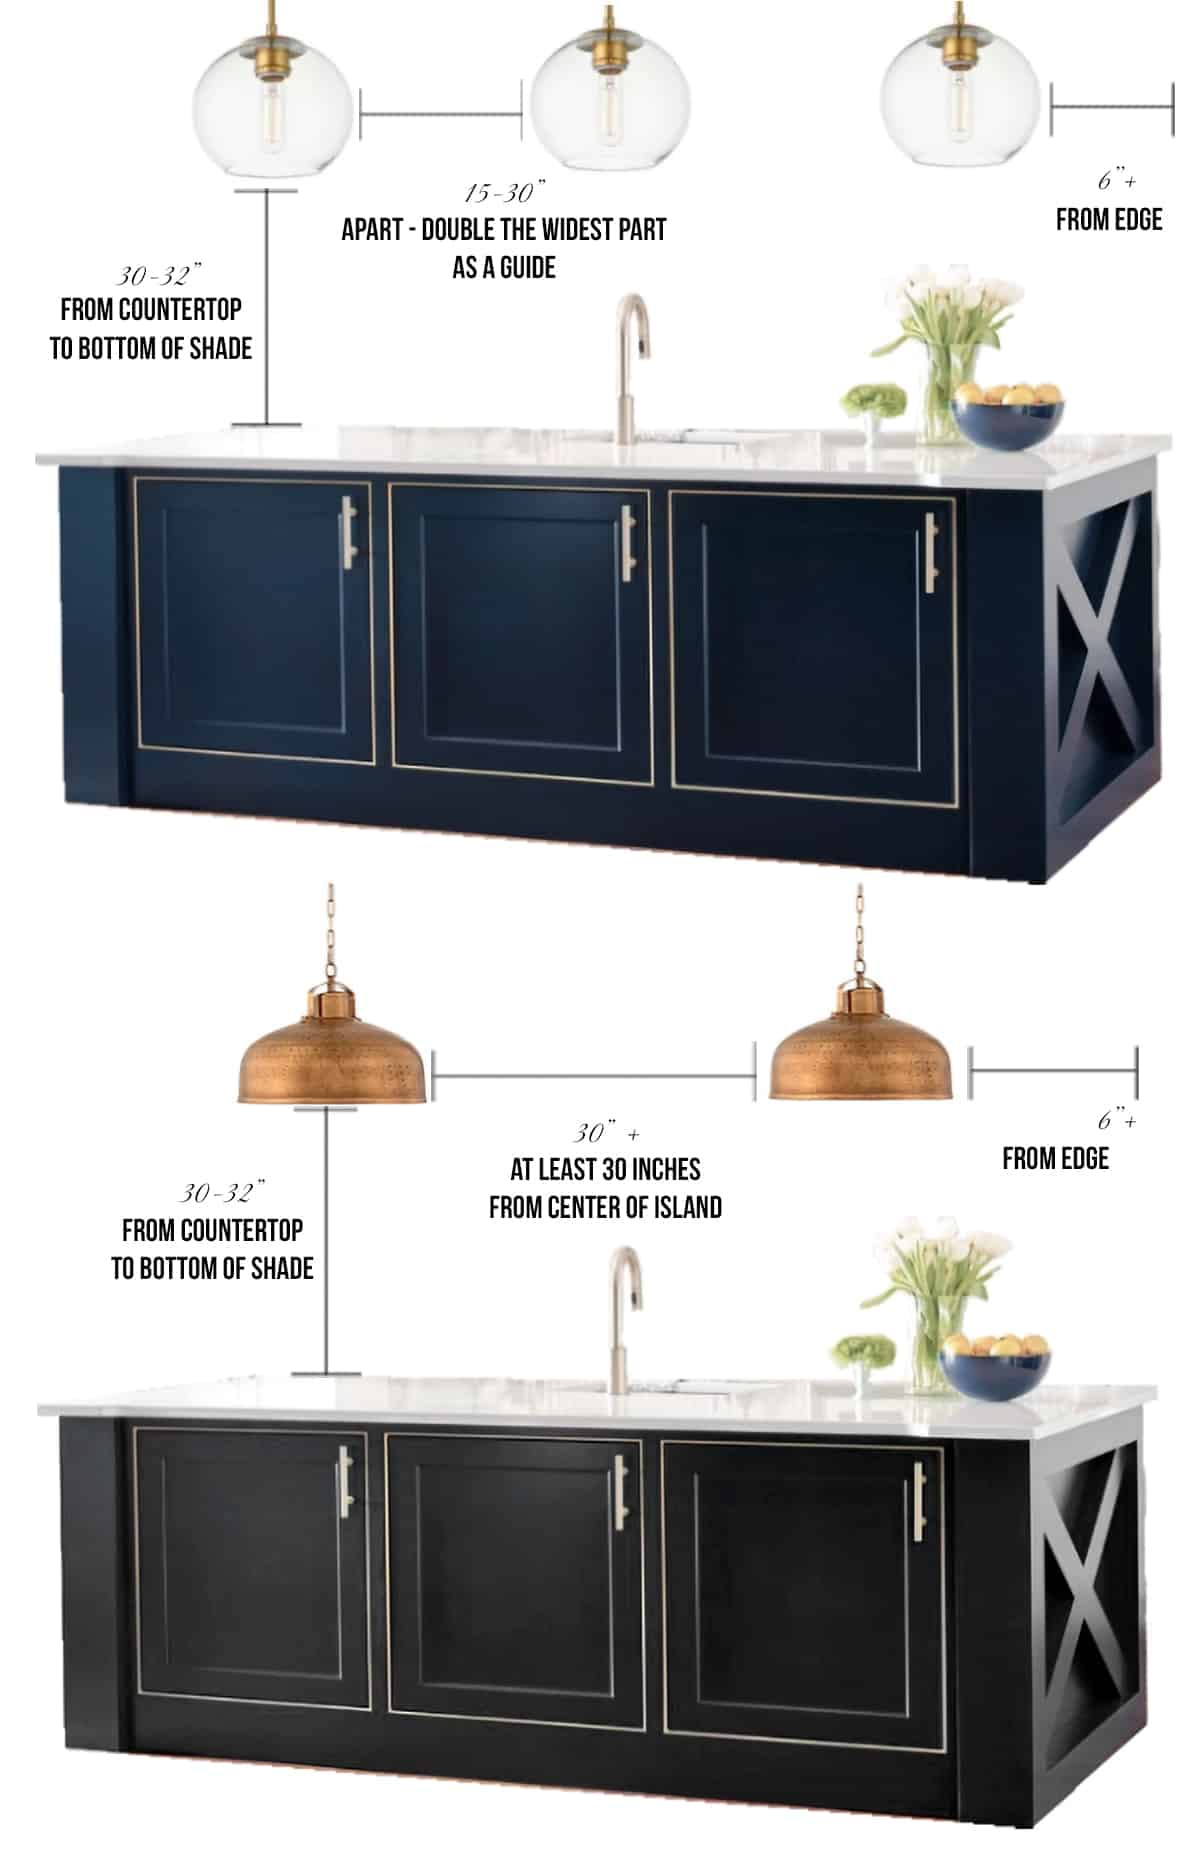 Graphic on how to properly measure and space pendant lighting over an island.